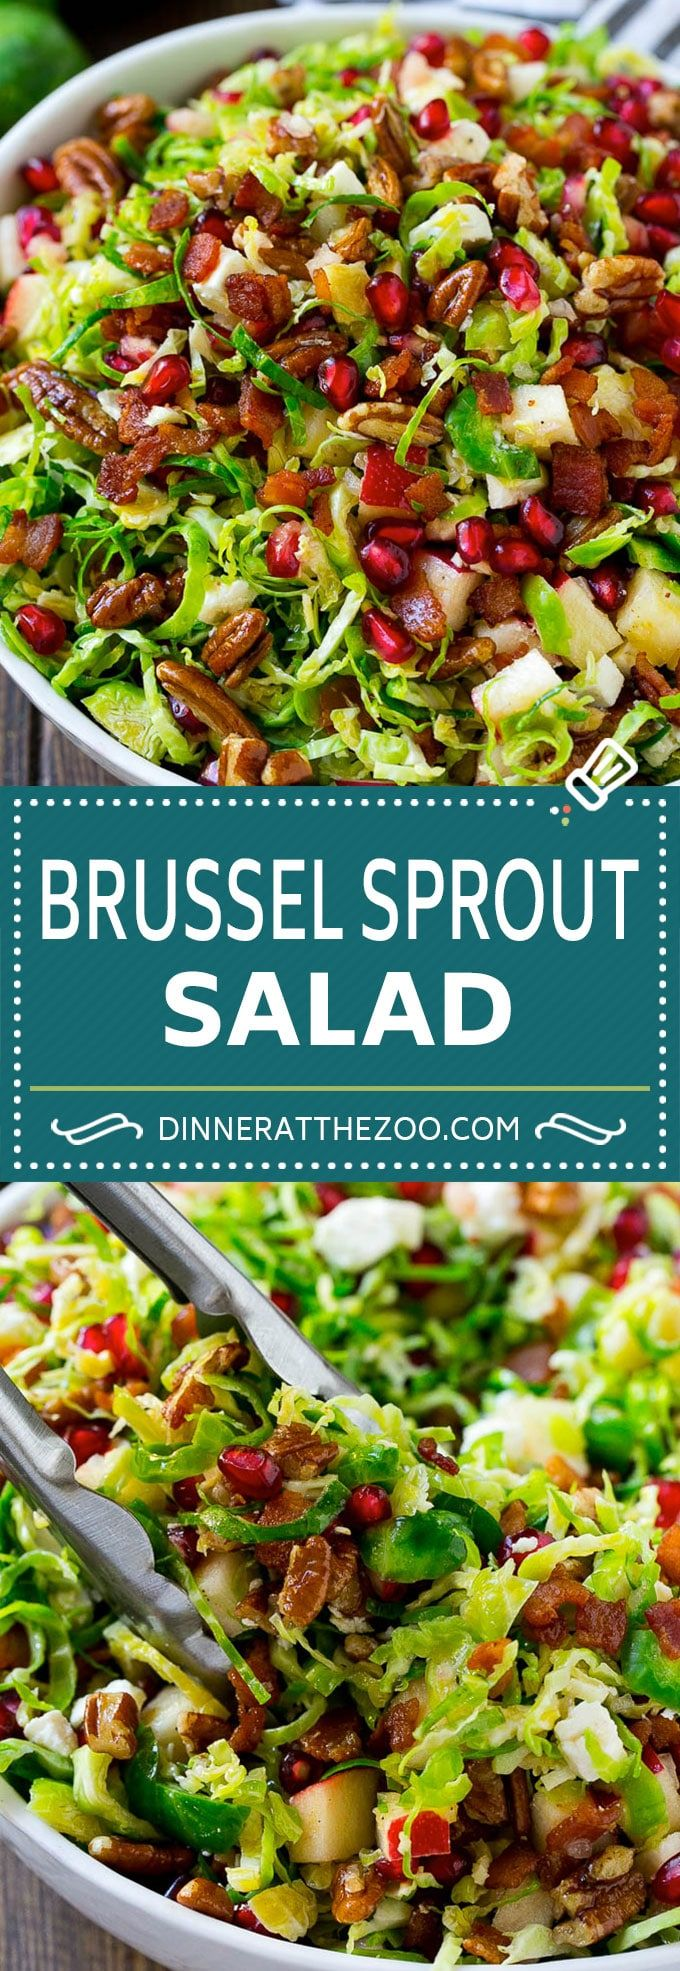 Brussels Sprout Salad Recipe Shredded Brussels Sprouts